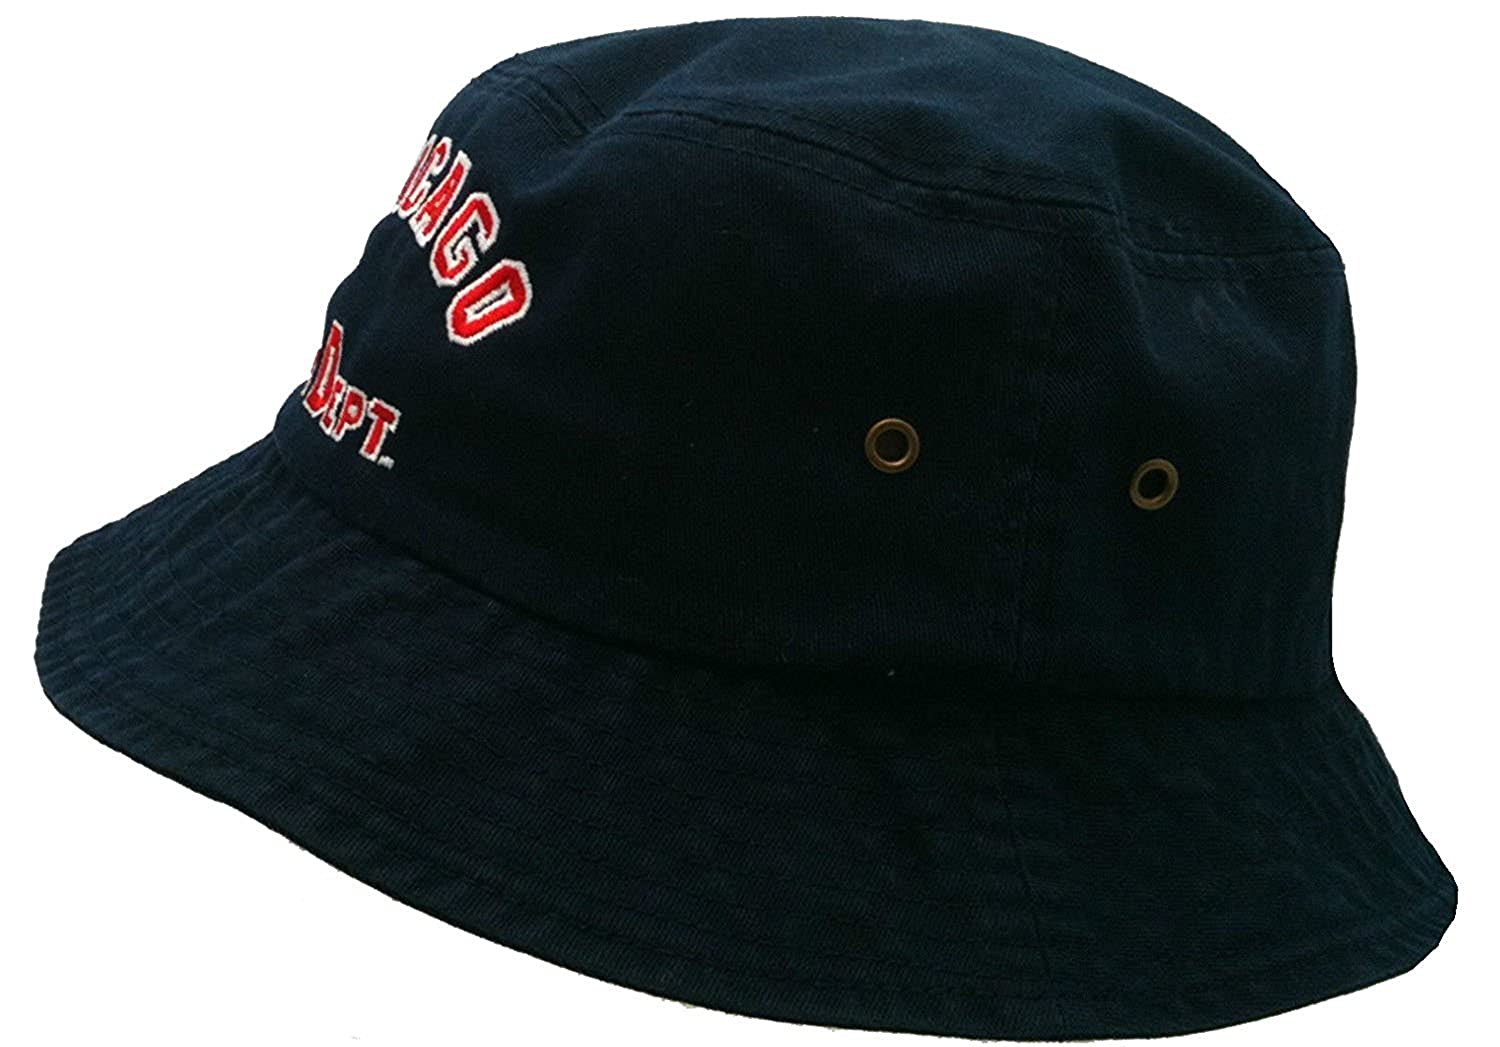 4ba97dac23d40 Chicago Fire Department Arched Logo Navy Bucket Hat at Amazon Men s  Clothing store